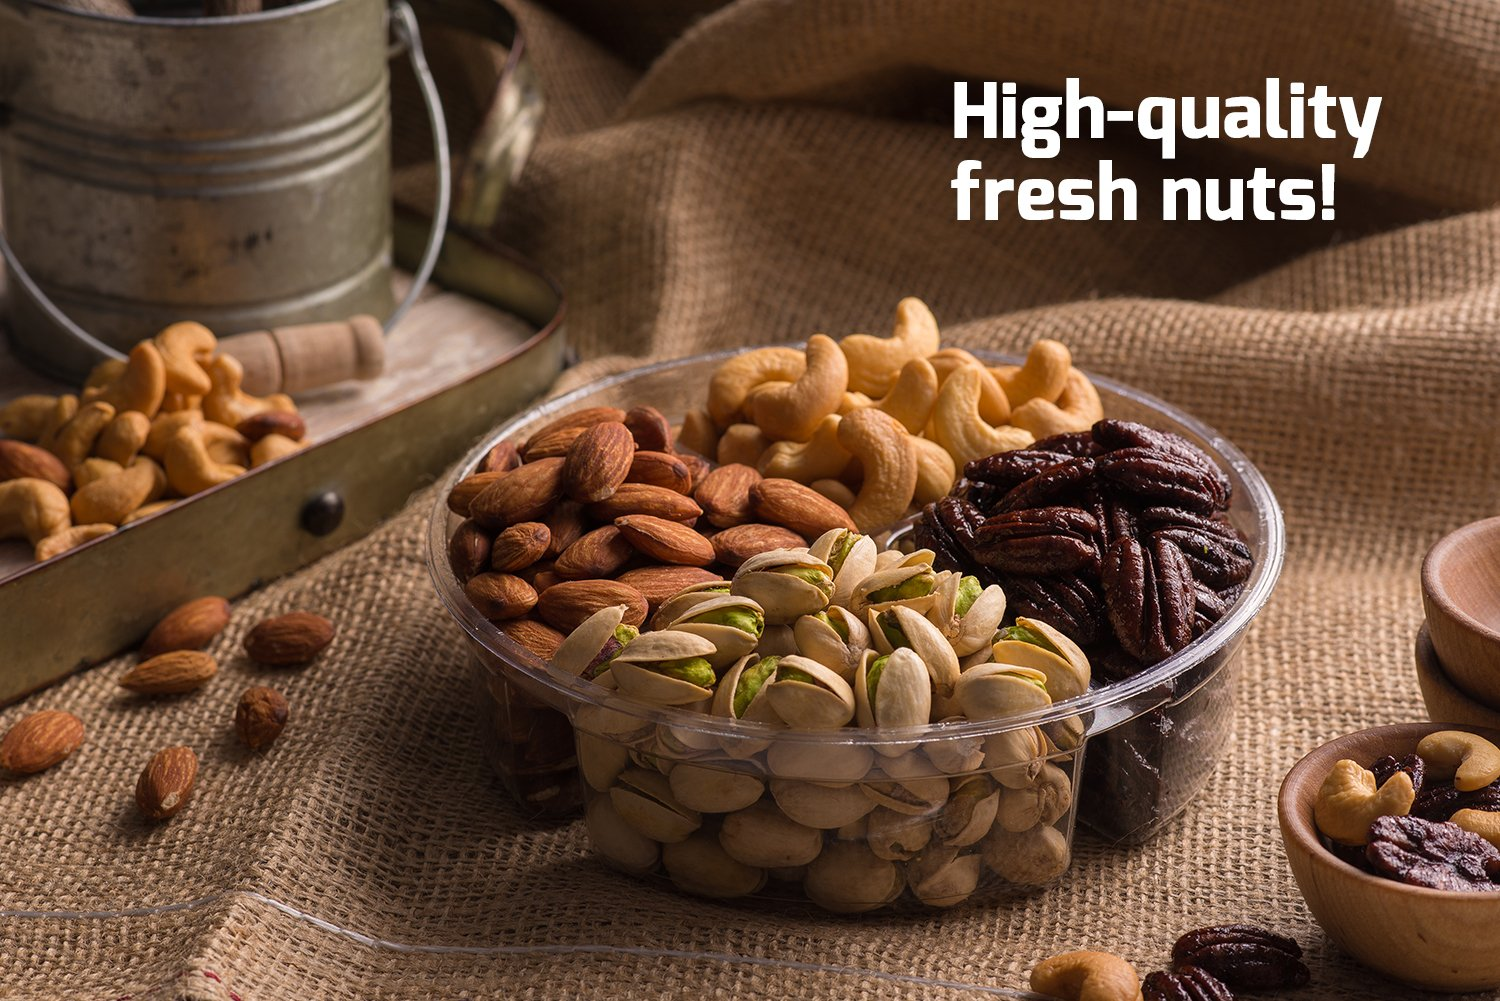 Nut Cravings Father's Day Gift Baskets - 4-Sectional Gourmet Mixed Nuts Prime Food Gift Tray - Healthy Holiday Gift Assortment For Birthday - Sympathy - Get Well - Corporate Gift Box - Or Any Occasion by Nut Cravings (Image #5)